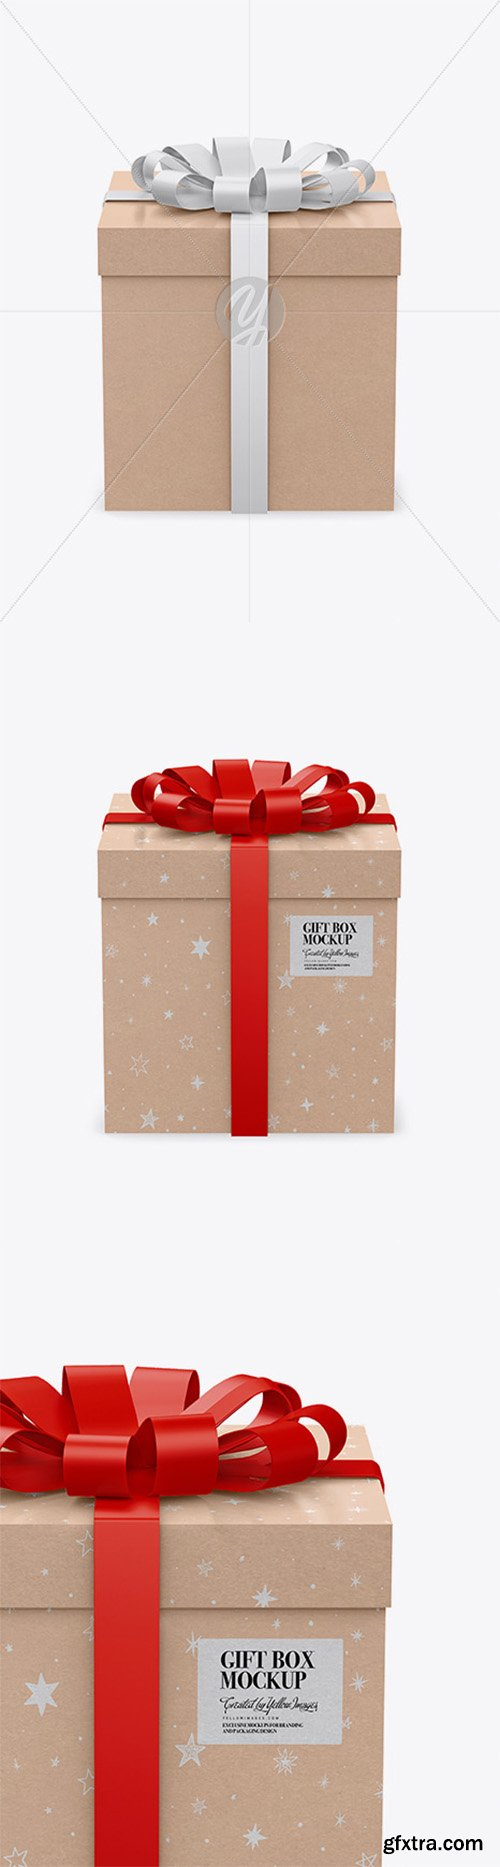 Kraft Paper Gift Box With Glossy Bow Mockup 50004